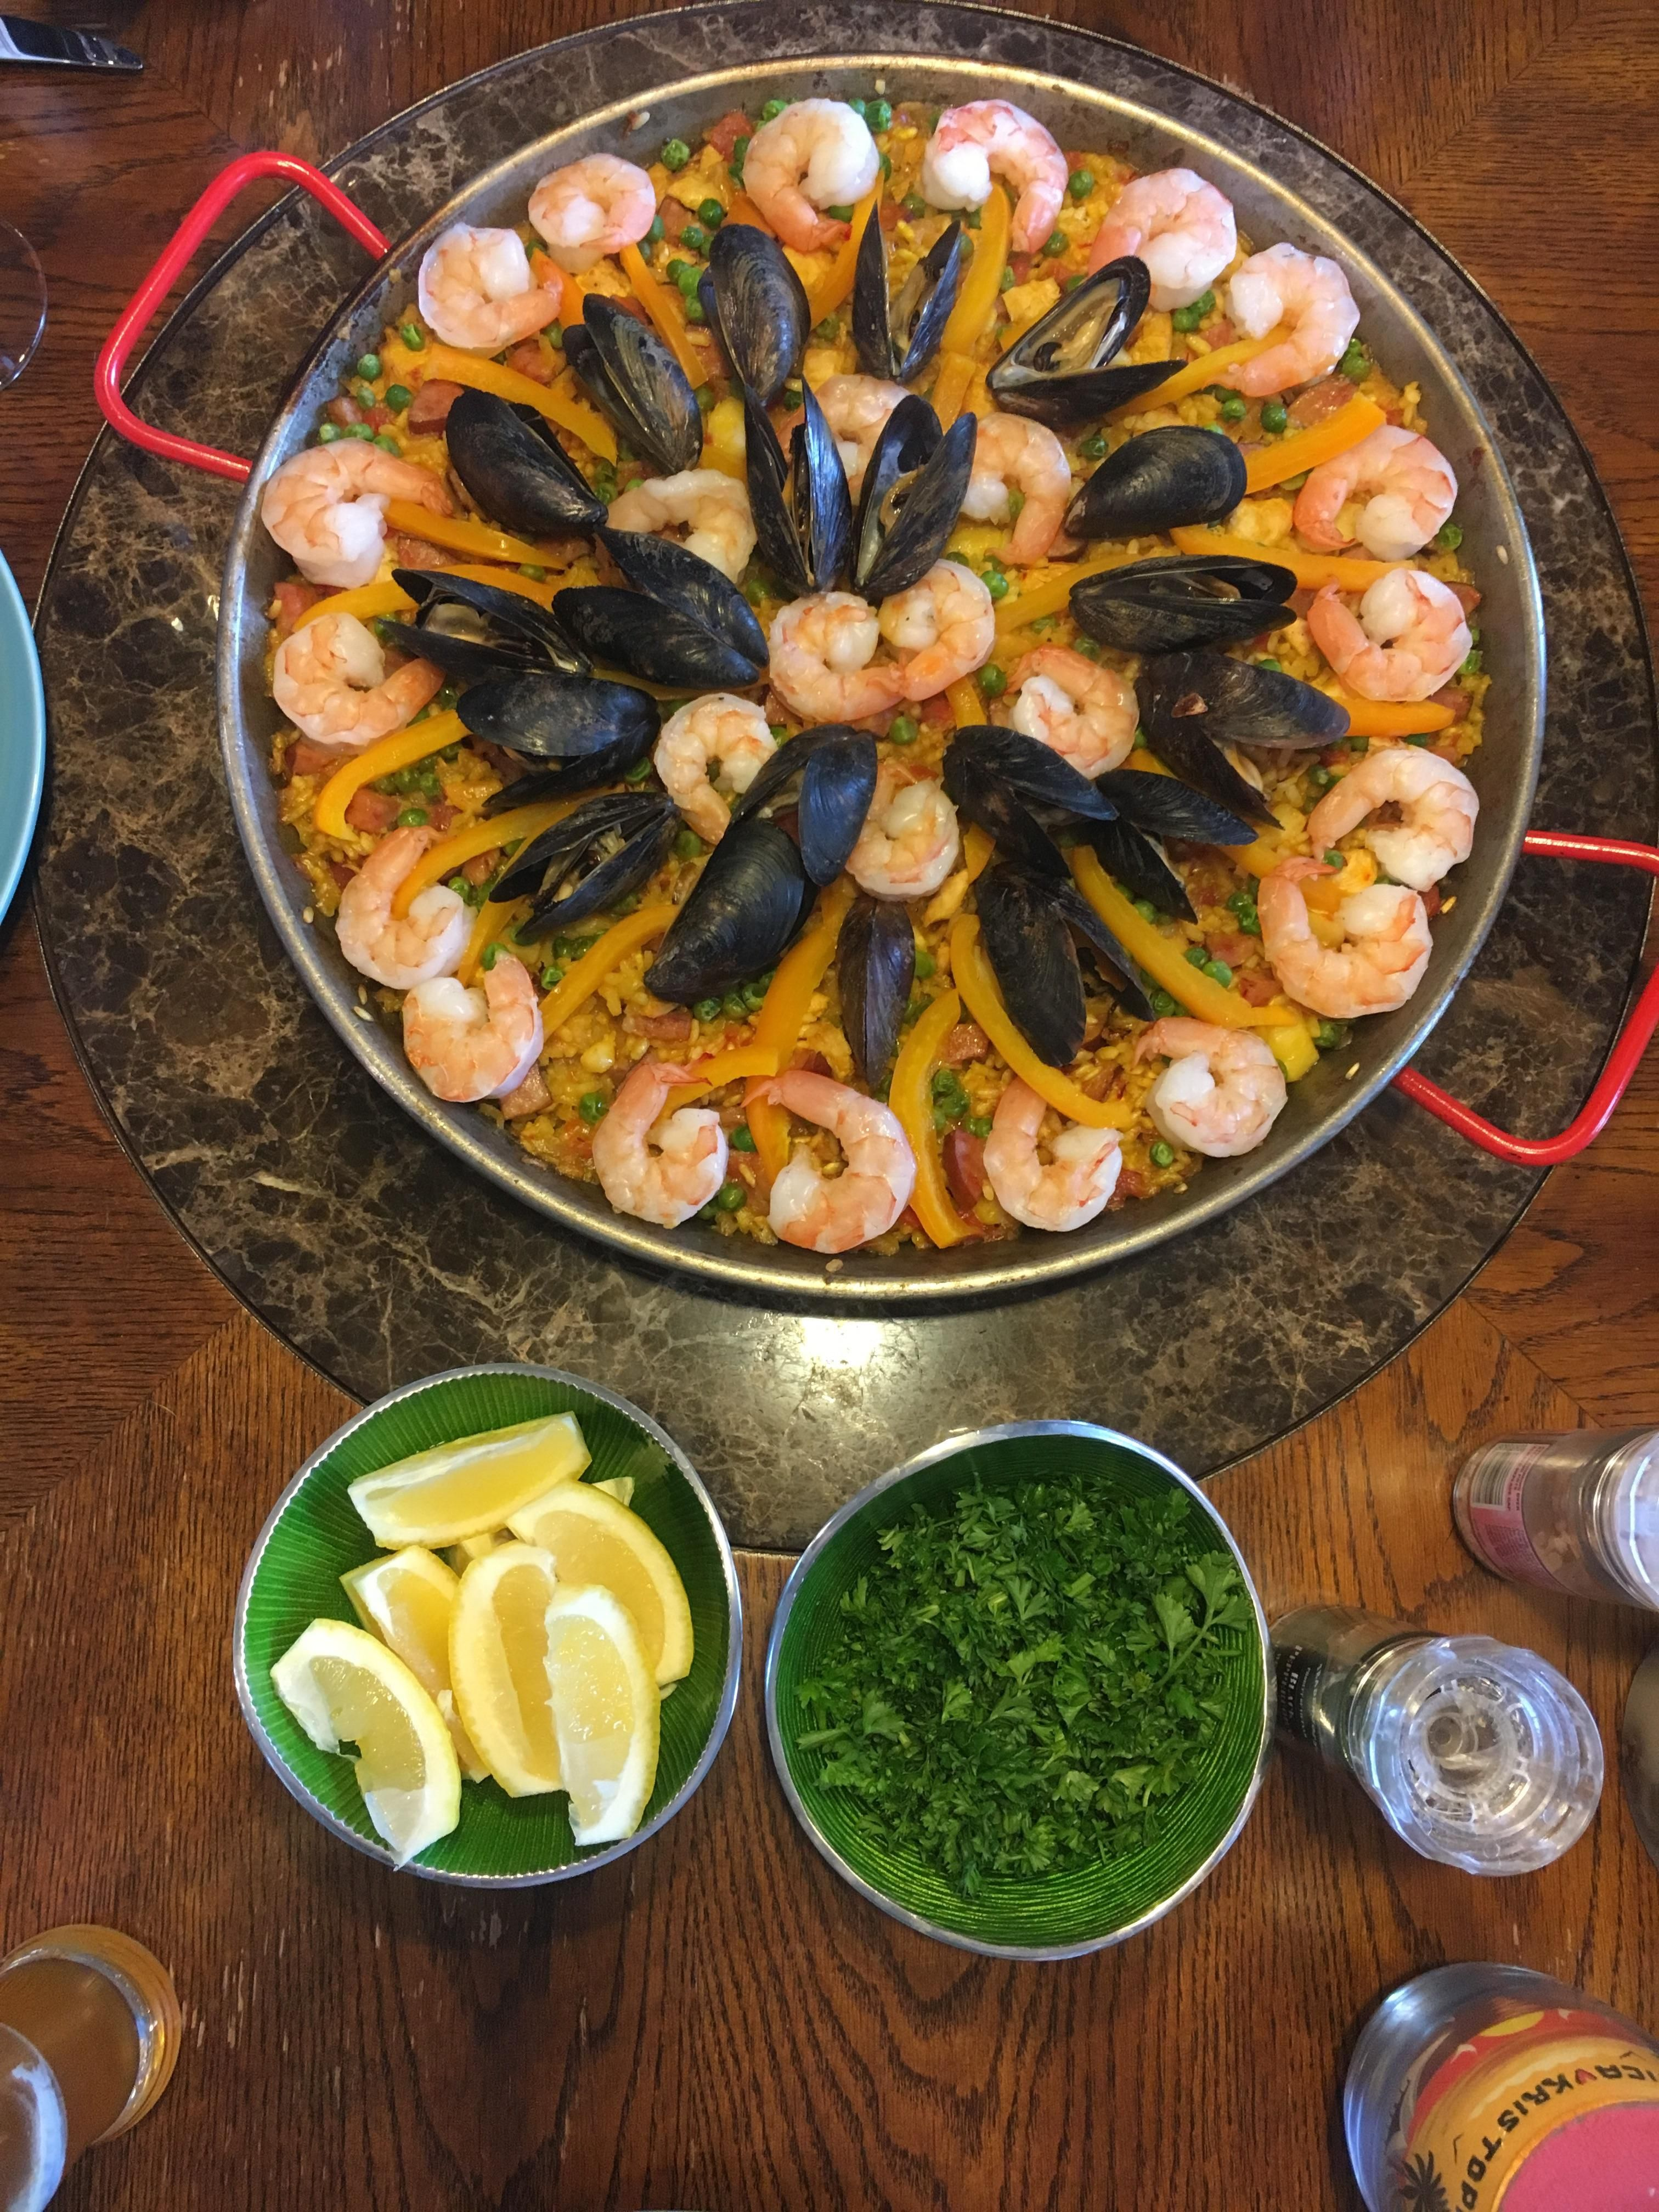 [I ate] Homemade paella recipes food cooking delicious